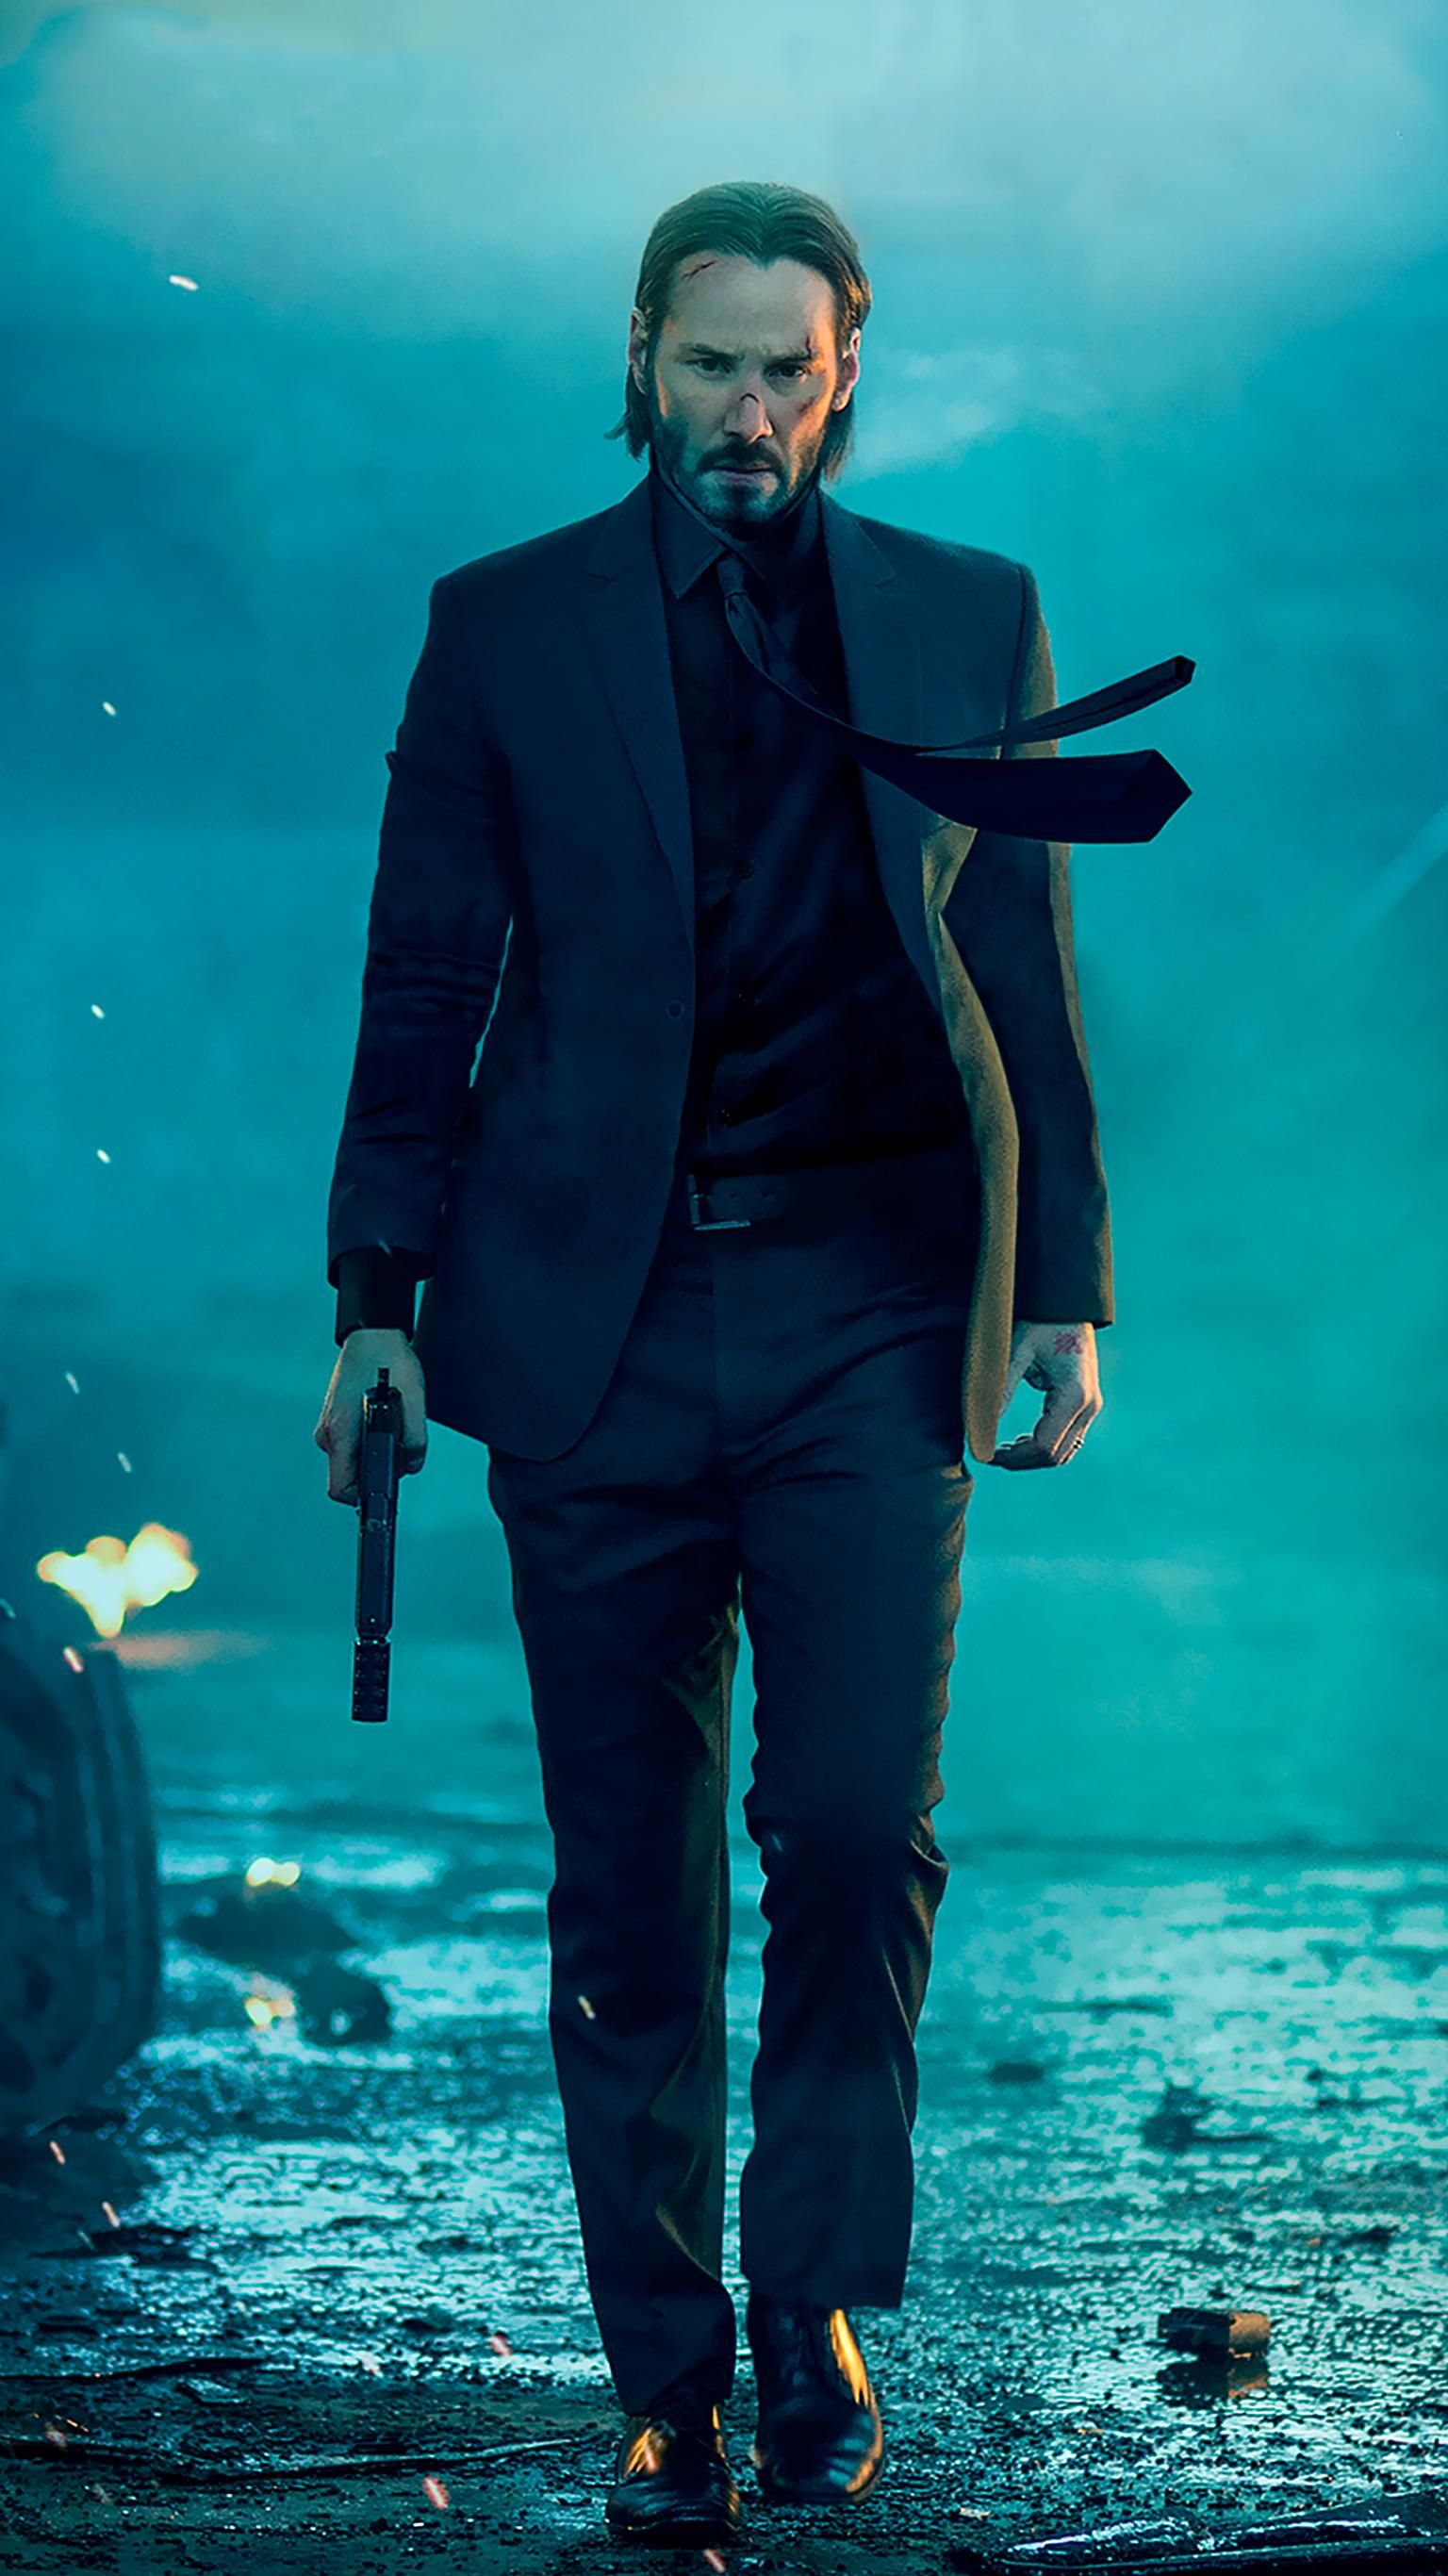 John Wick 2014 Phone Wallpaper Moviemania Keanu Reeves John Wick John Wick Movie John Wick Hd